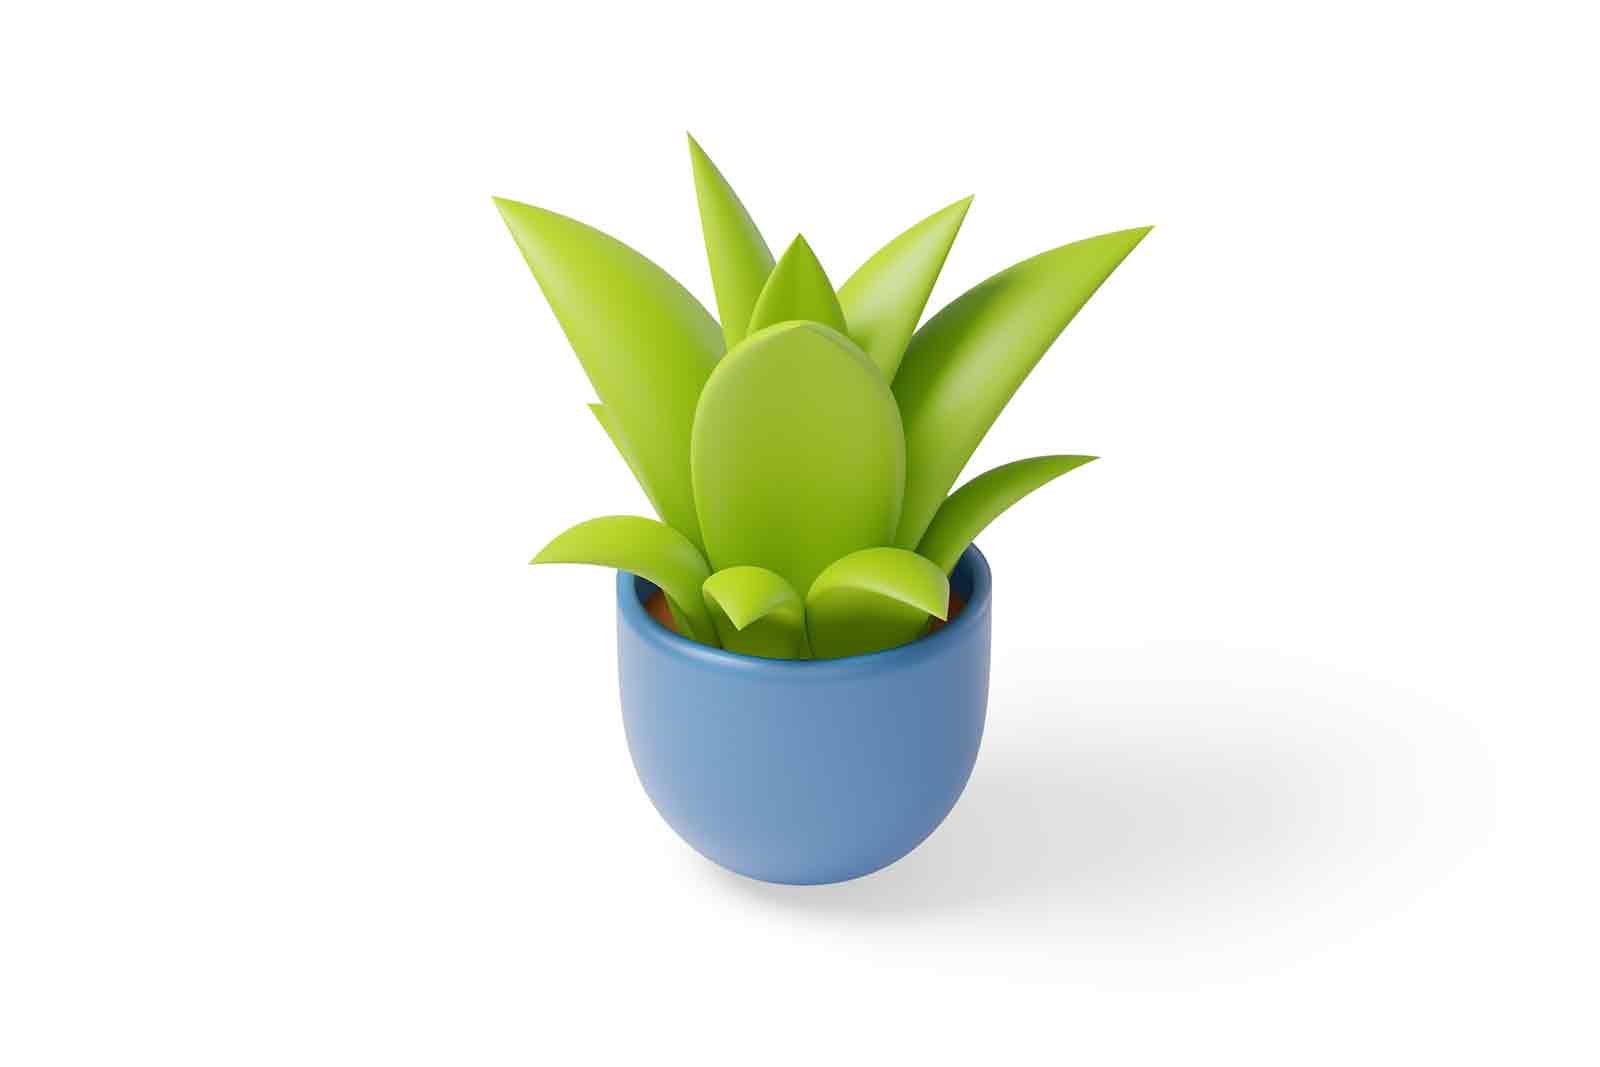 Flowerpots for decorating the interiors of apartments 3d illustration. Isometric green decorative houseplant in pot. Element for interior design